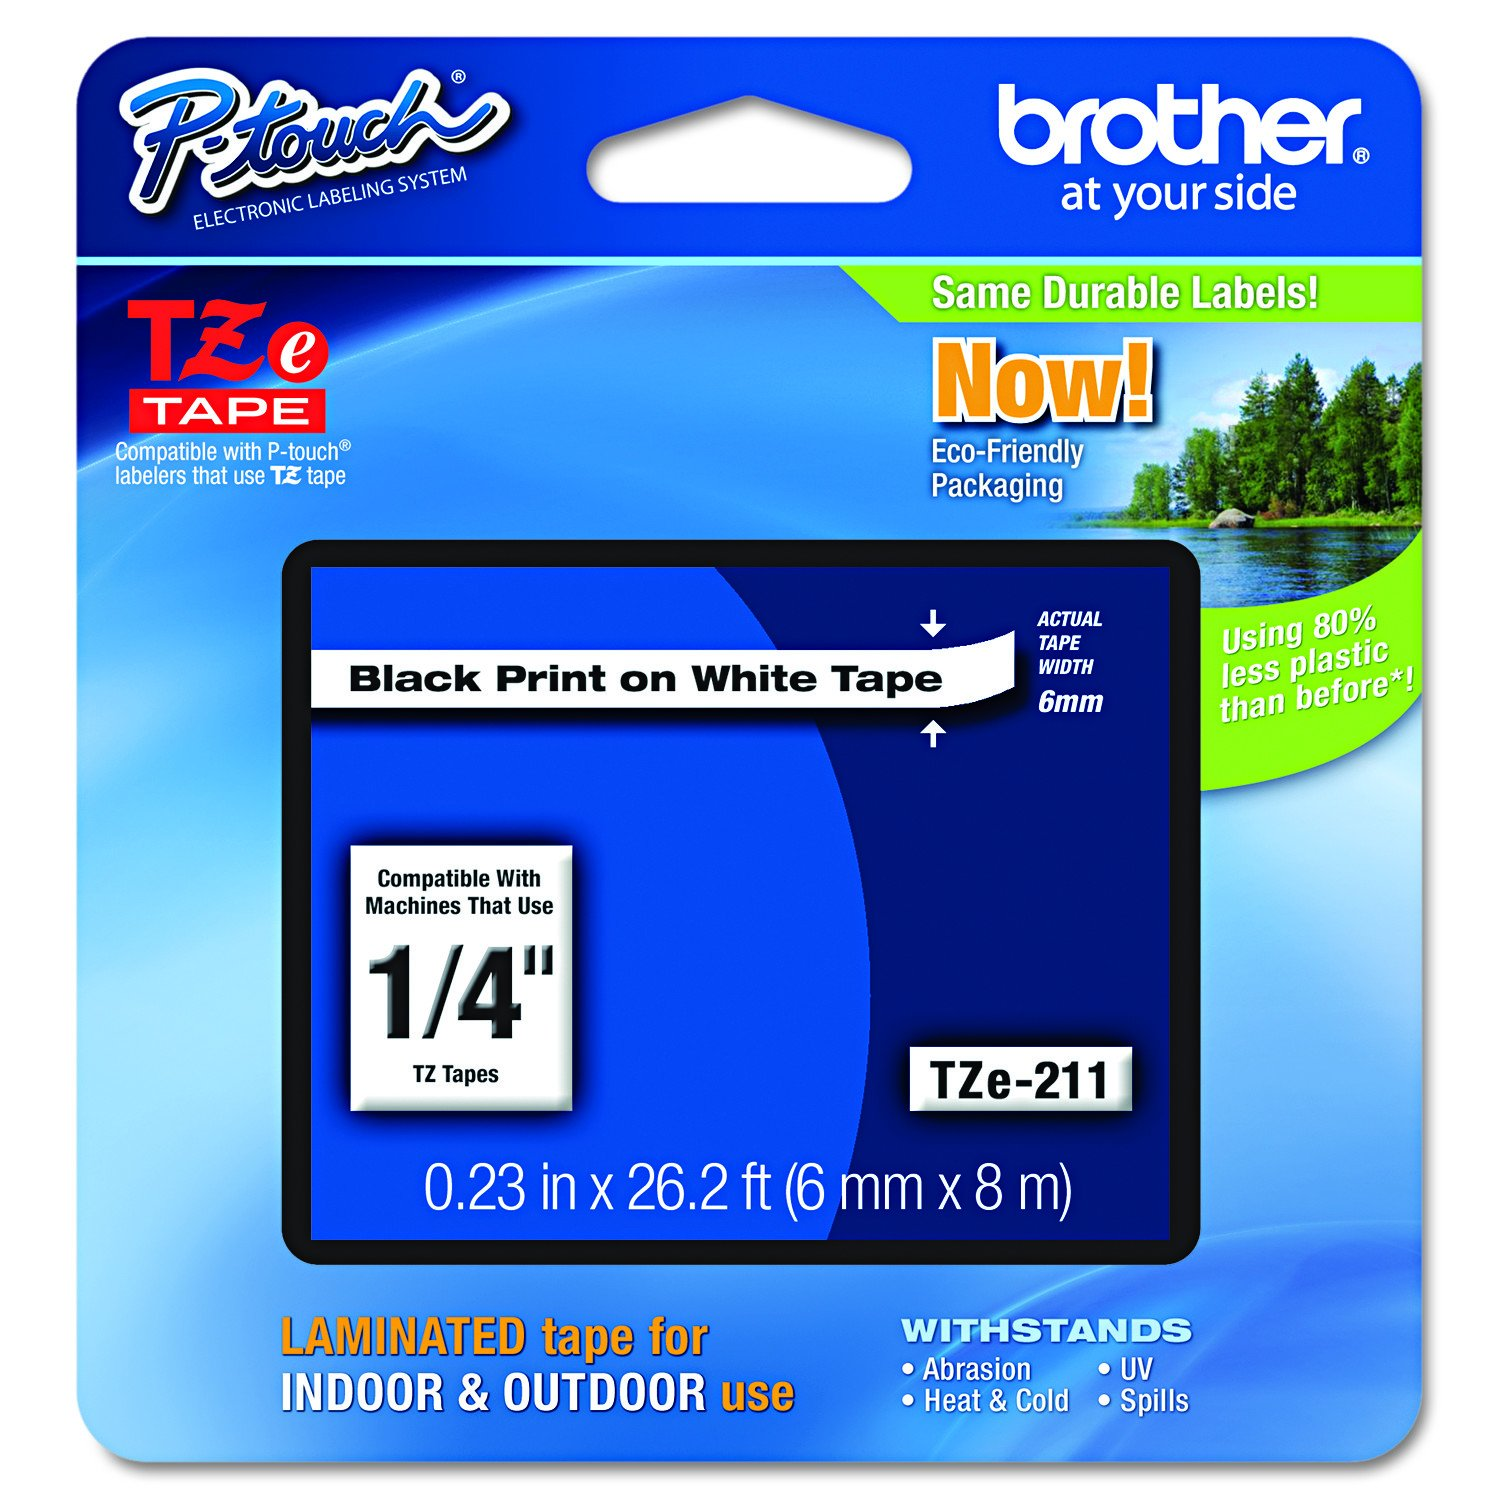 """Brother Genuine P-touch TZE-211 Label Tape 1, 1/4"""" (0.23"""") Standard Laminated P-touch Tape, Black on White, Laminated for Indoor or Outdoor Use, Water Resistant, 26.2 Feet (8M), Single-Pack"""